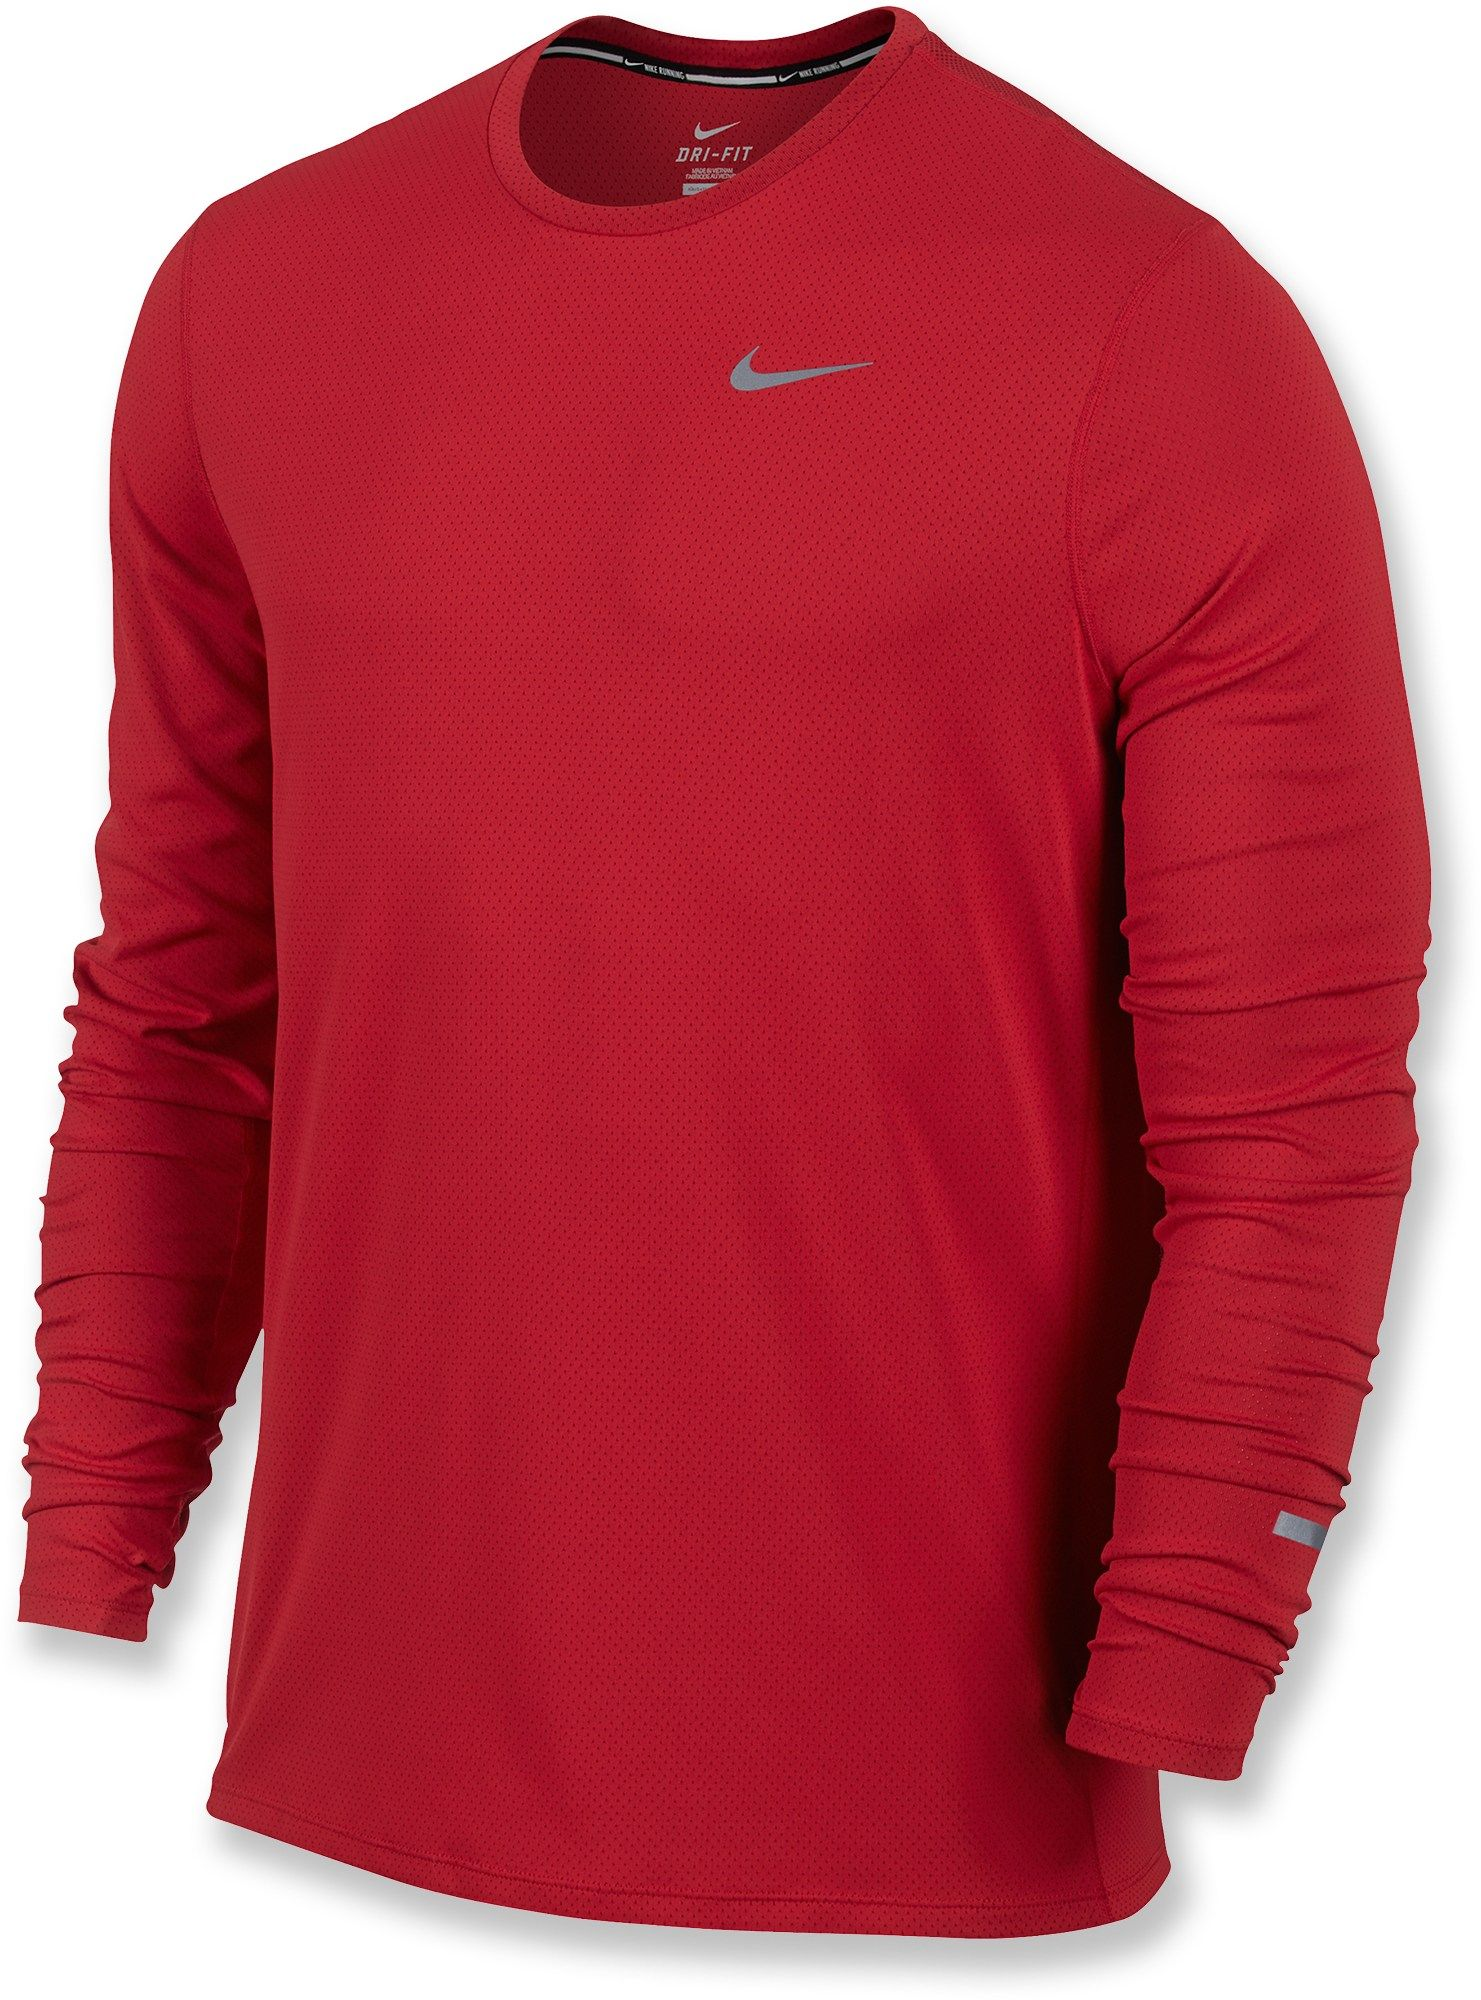 53cab32052f3 Nike Male Dri-Fit Contour Long-Sleeve T-Shirt - Men s